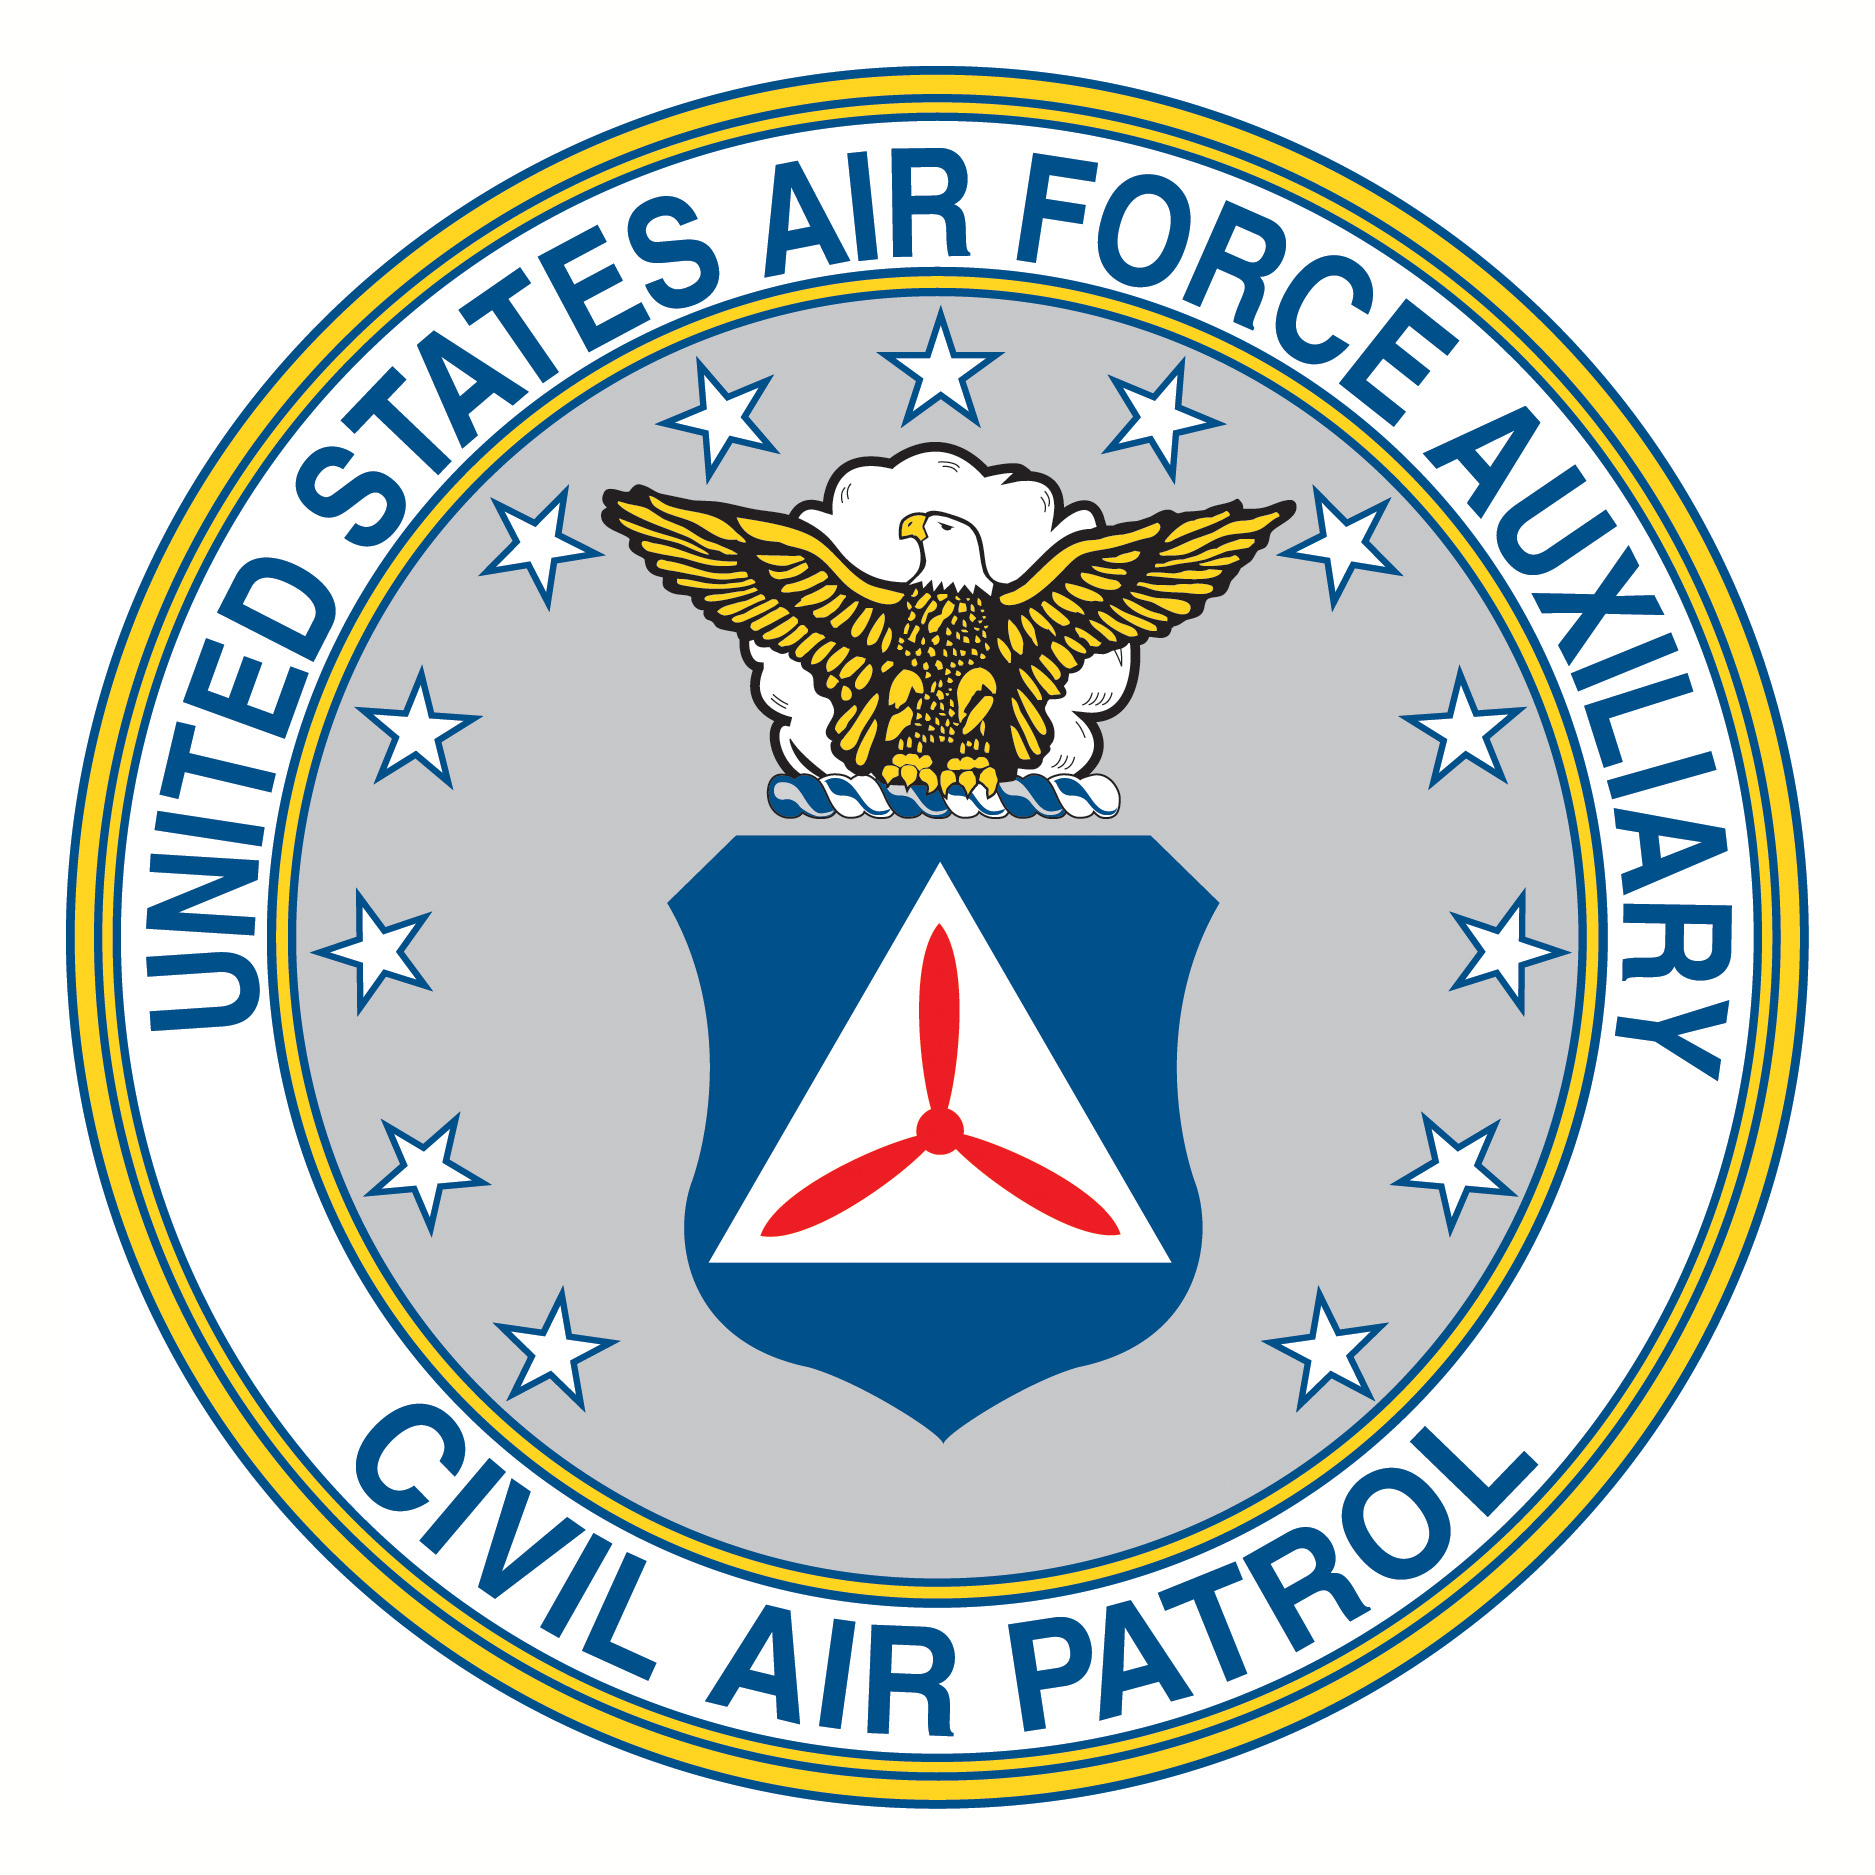 Triangles seal and emblem civil air patrol national headquarters united state air force auxiliary civil air patrol seal buycottarizona